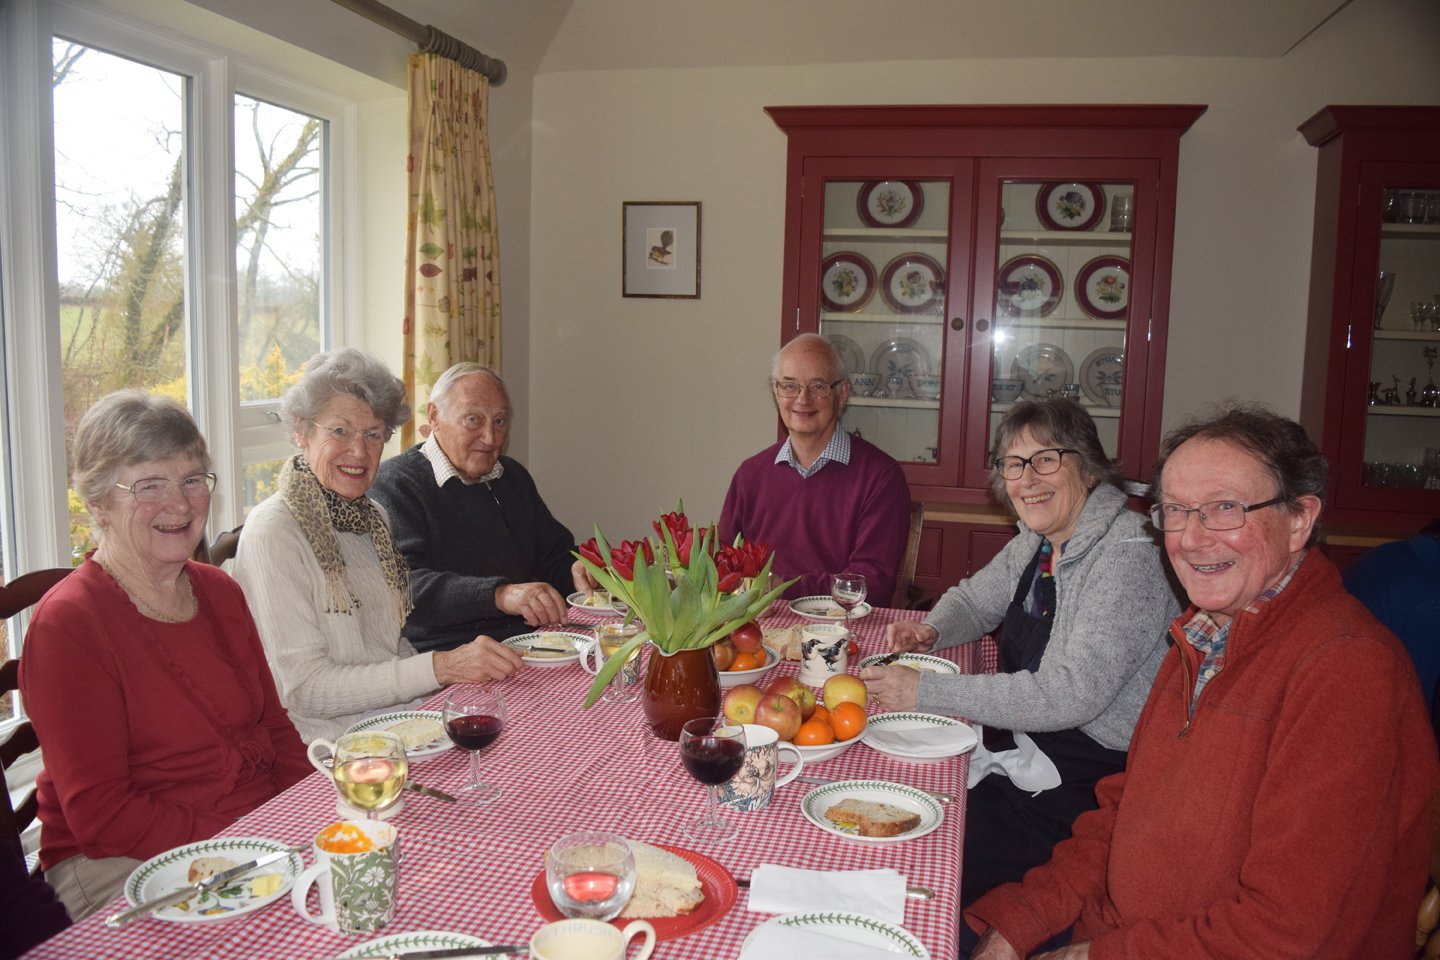 Lent lunch 2018 in aid of Stone pillow Charity from st giles graffham